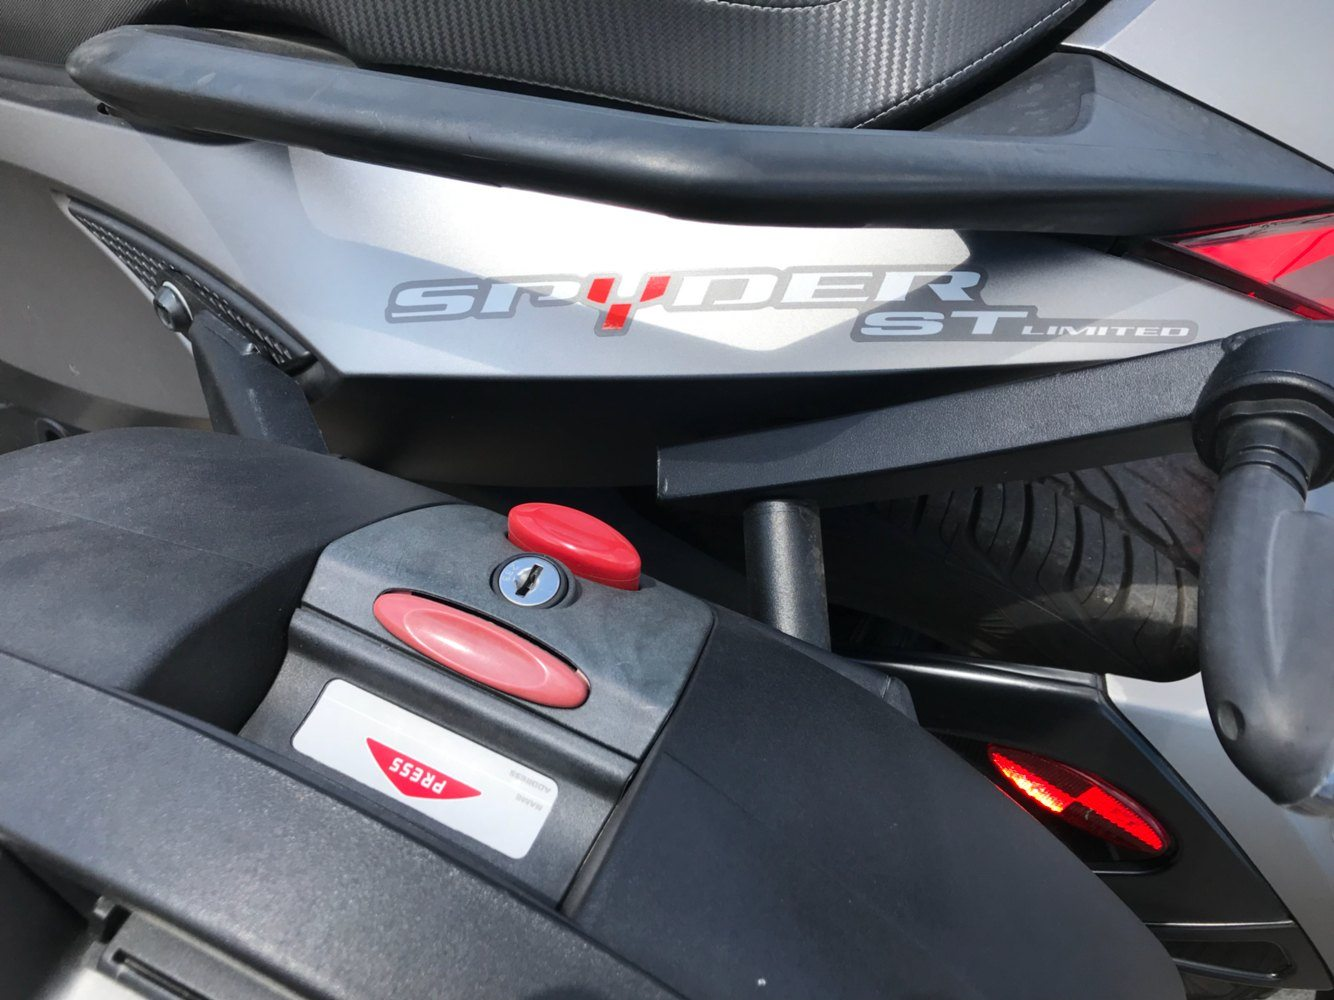 2014 Can-Am™ Spyder ST Limited 5